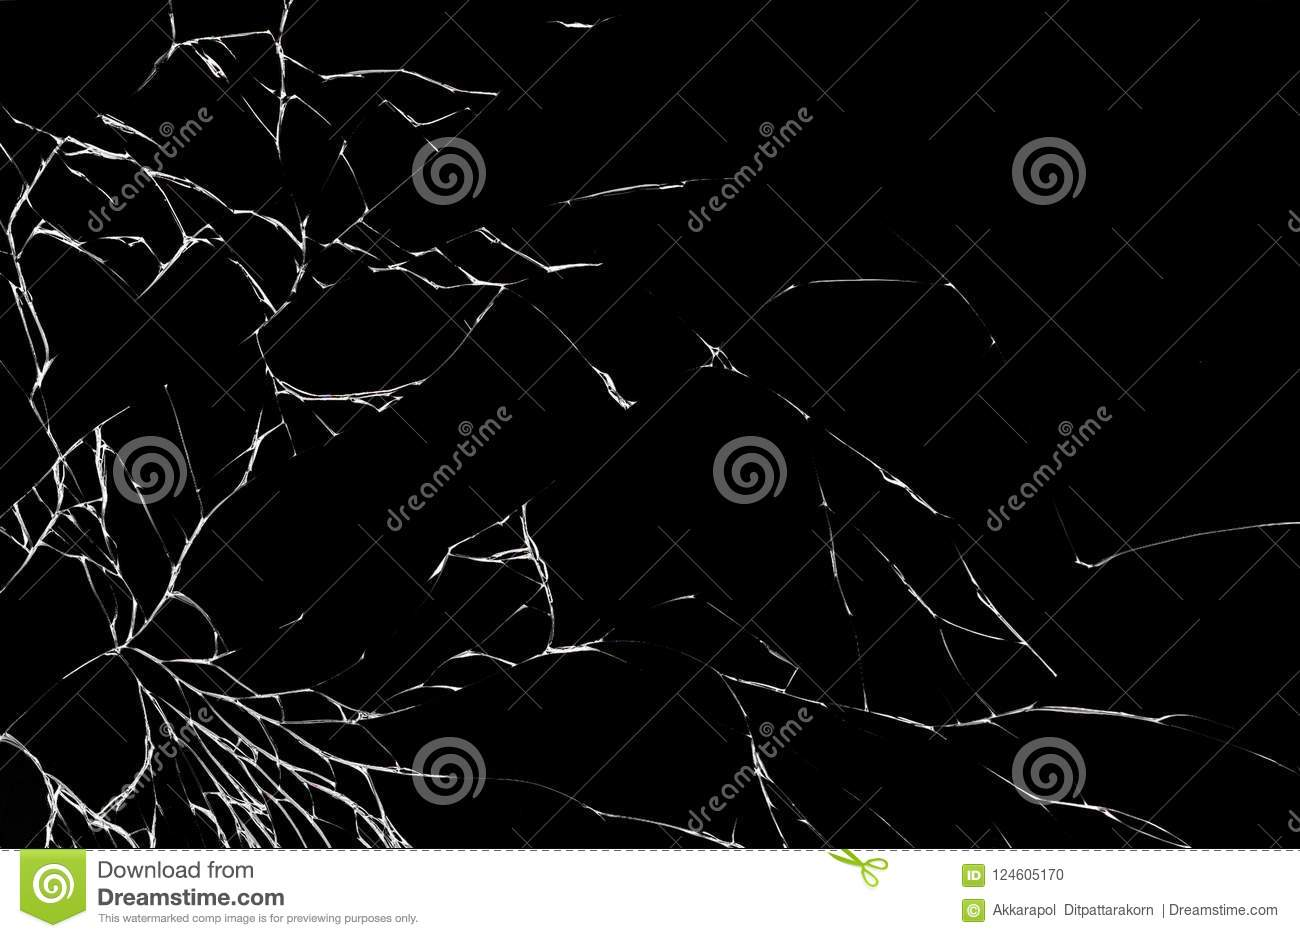 Texture of broken mobile phone screen opn white background.